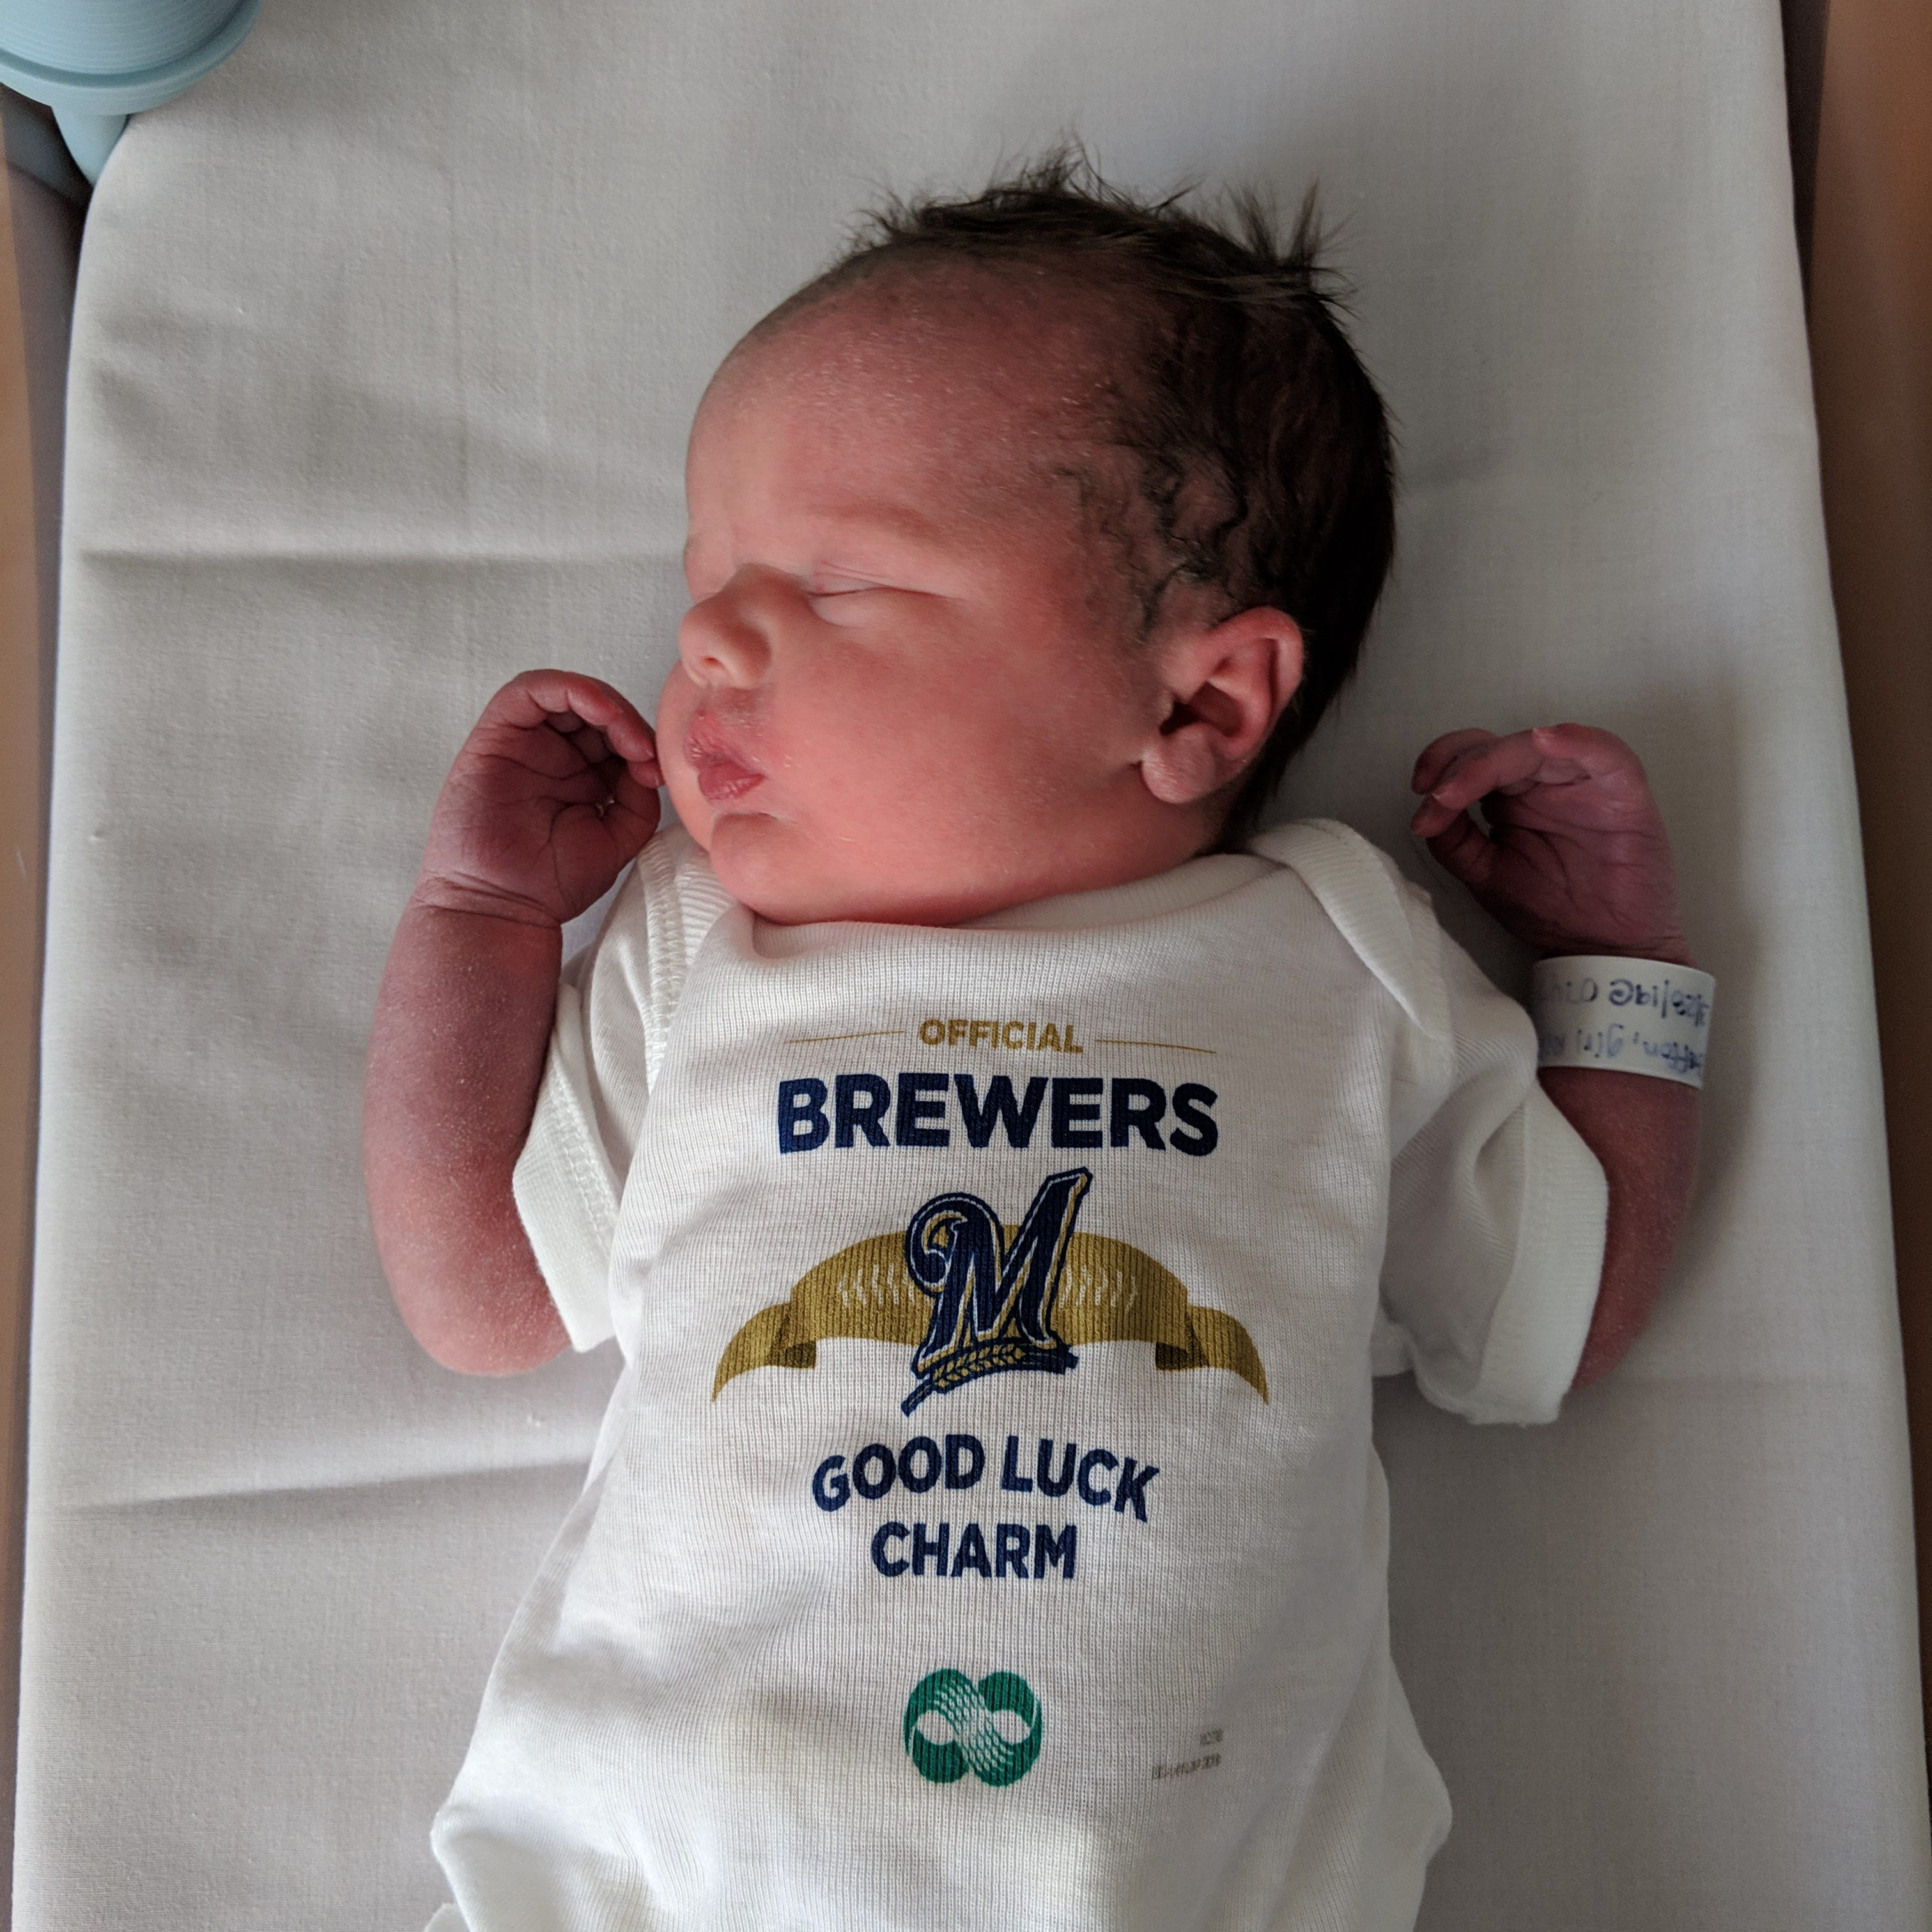 Newest Brewers fans may already be bringing the team good luck